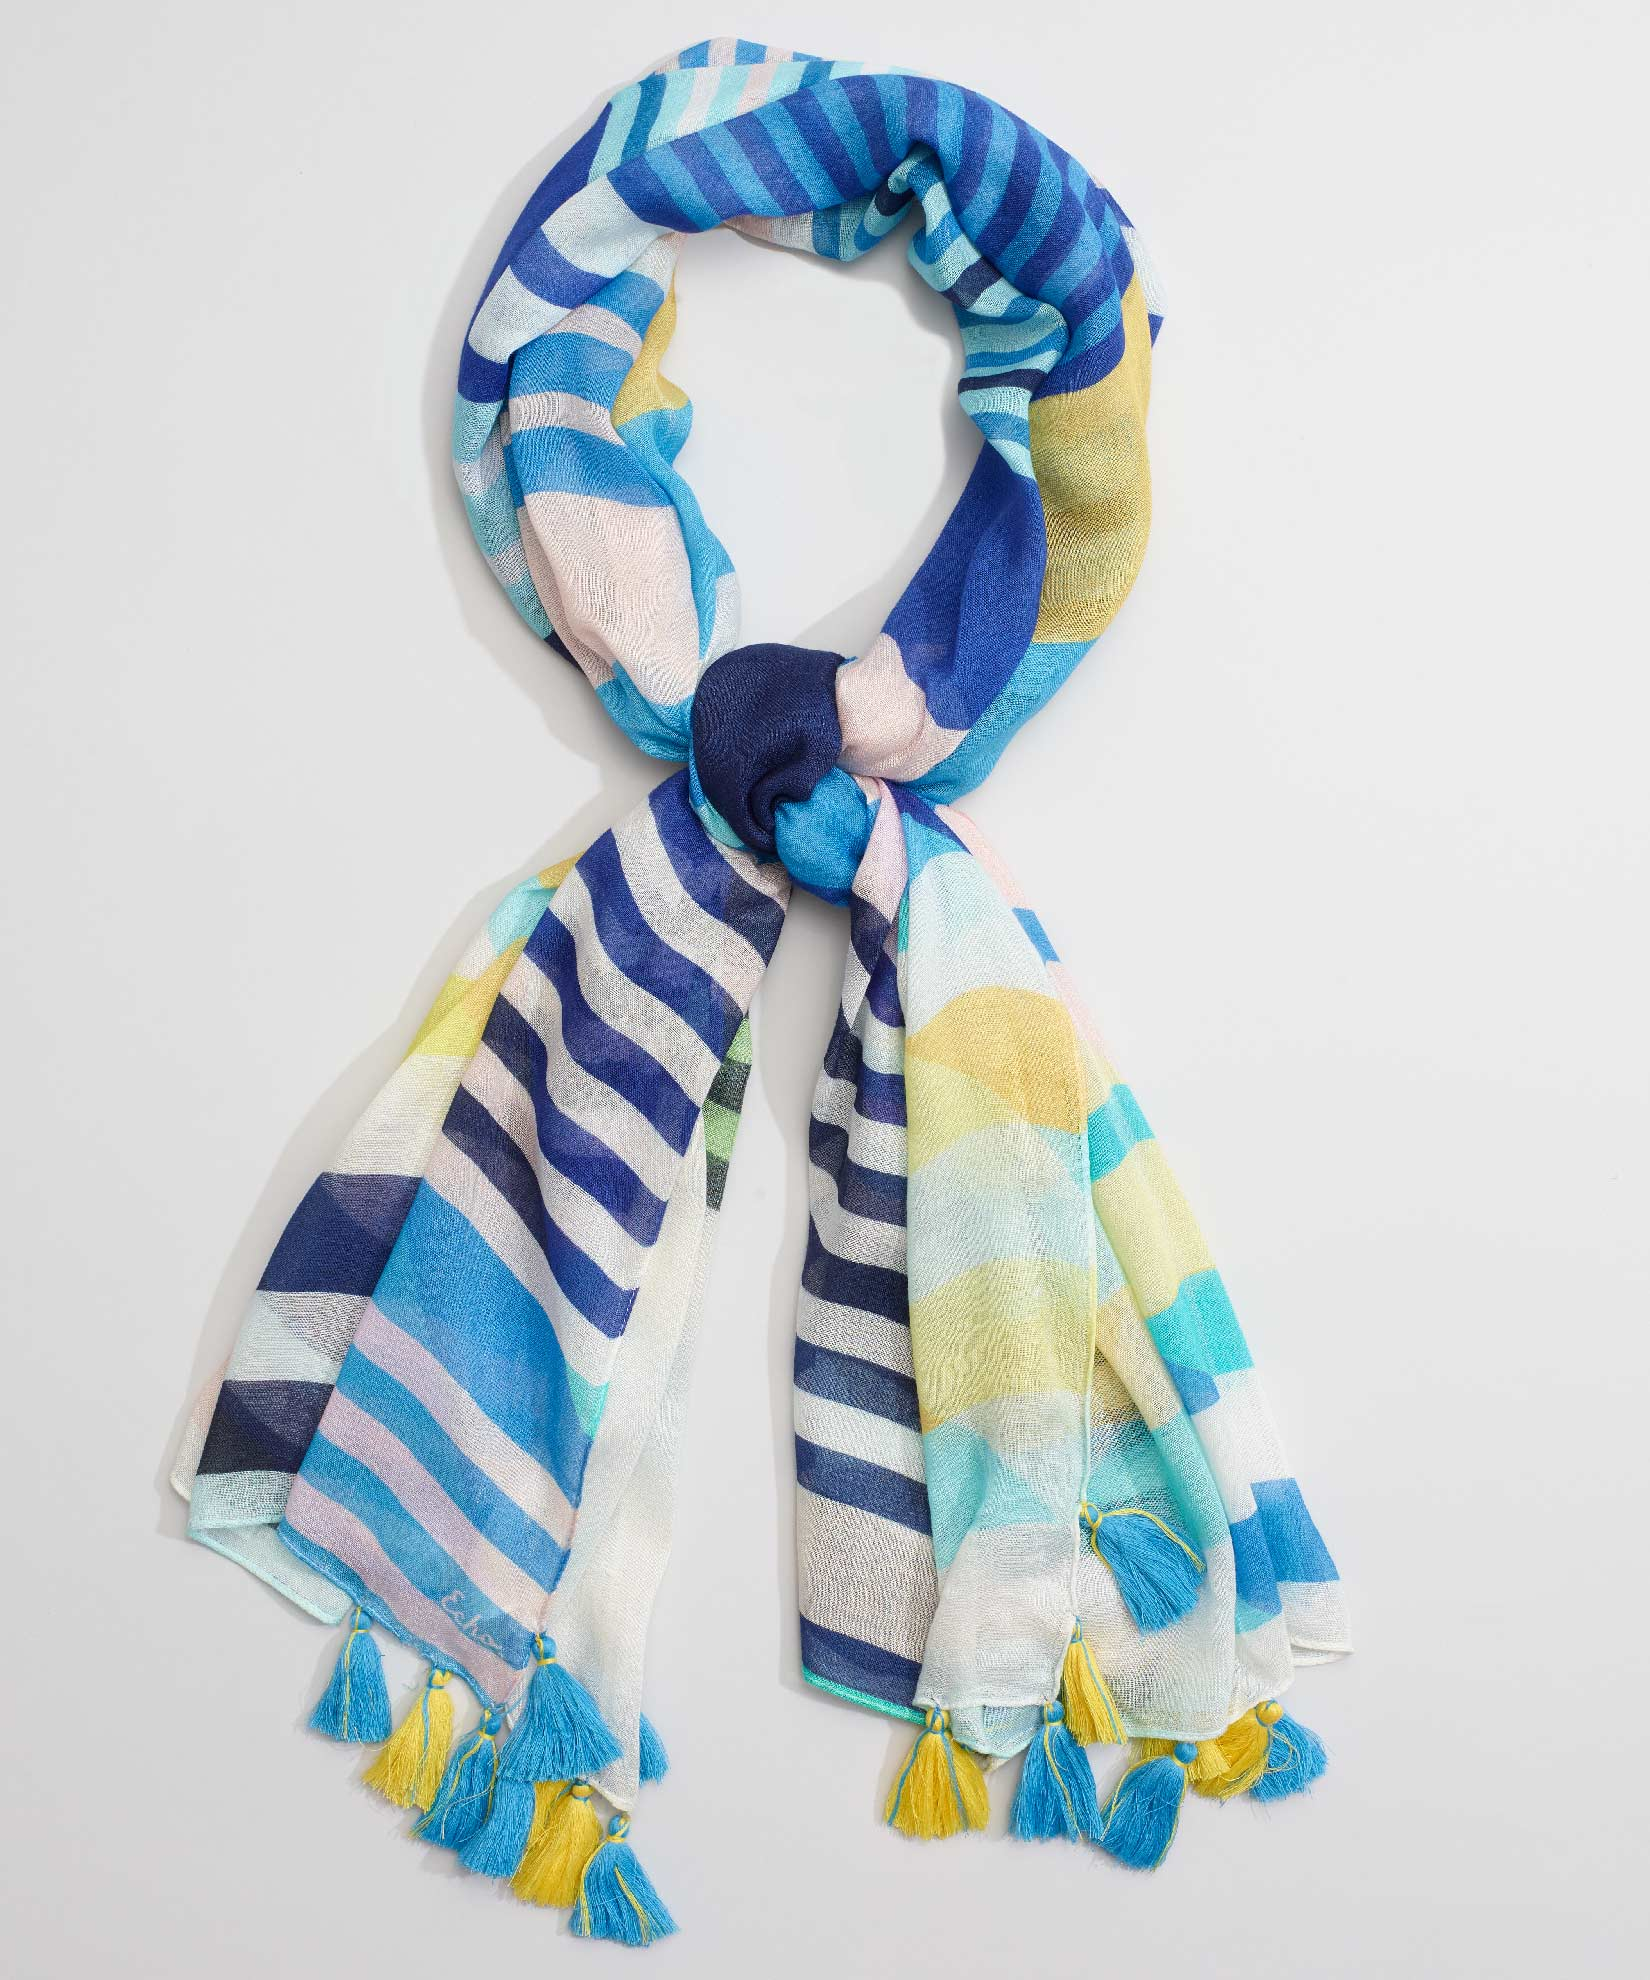 Coastal Blue - Stripes On Stripes Oblong